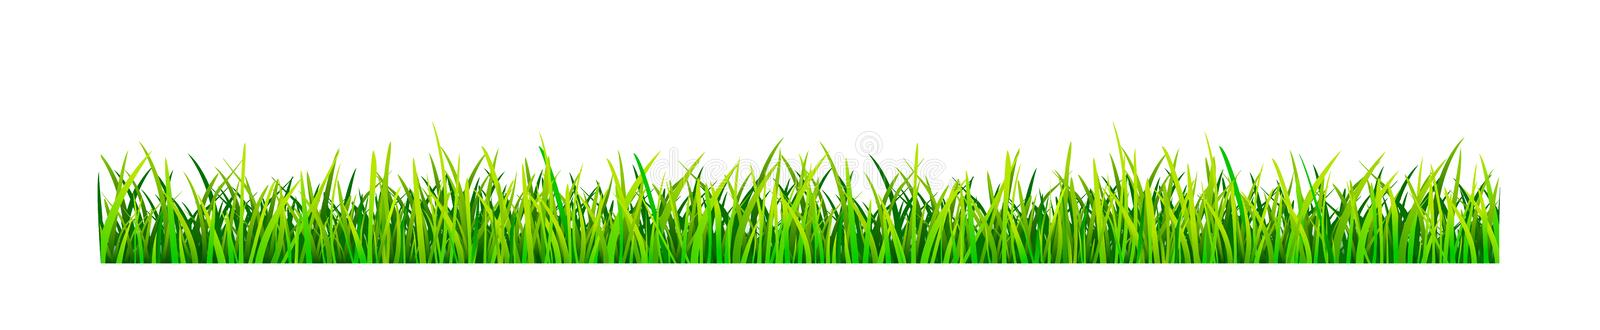 Grassy lawn. On a white background. Green grass banner vector illustration